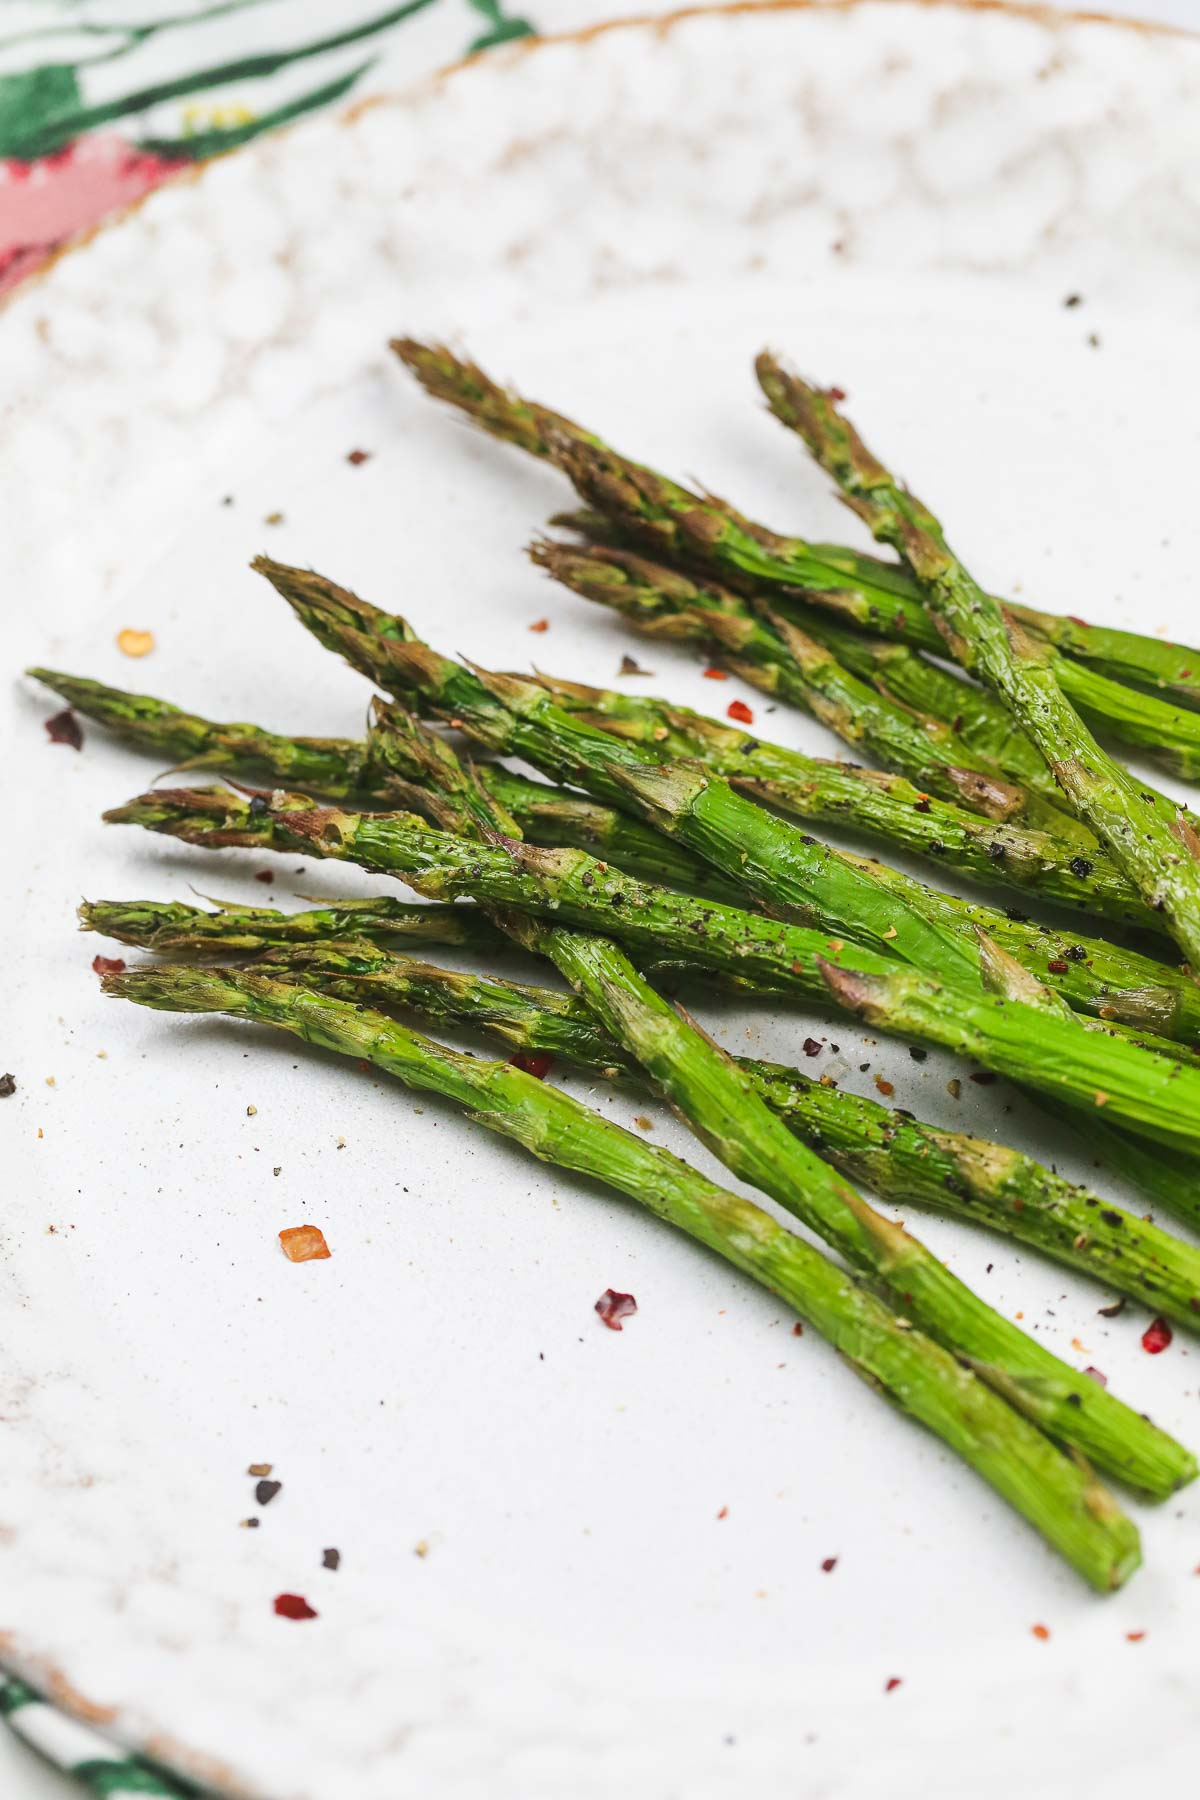 Air Fried asparagus tips topped with chilli flakes on a white plate